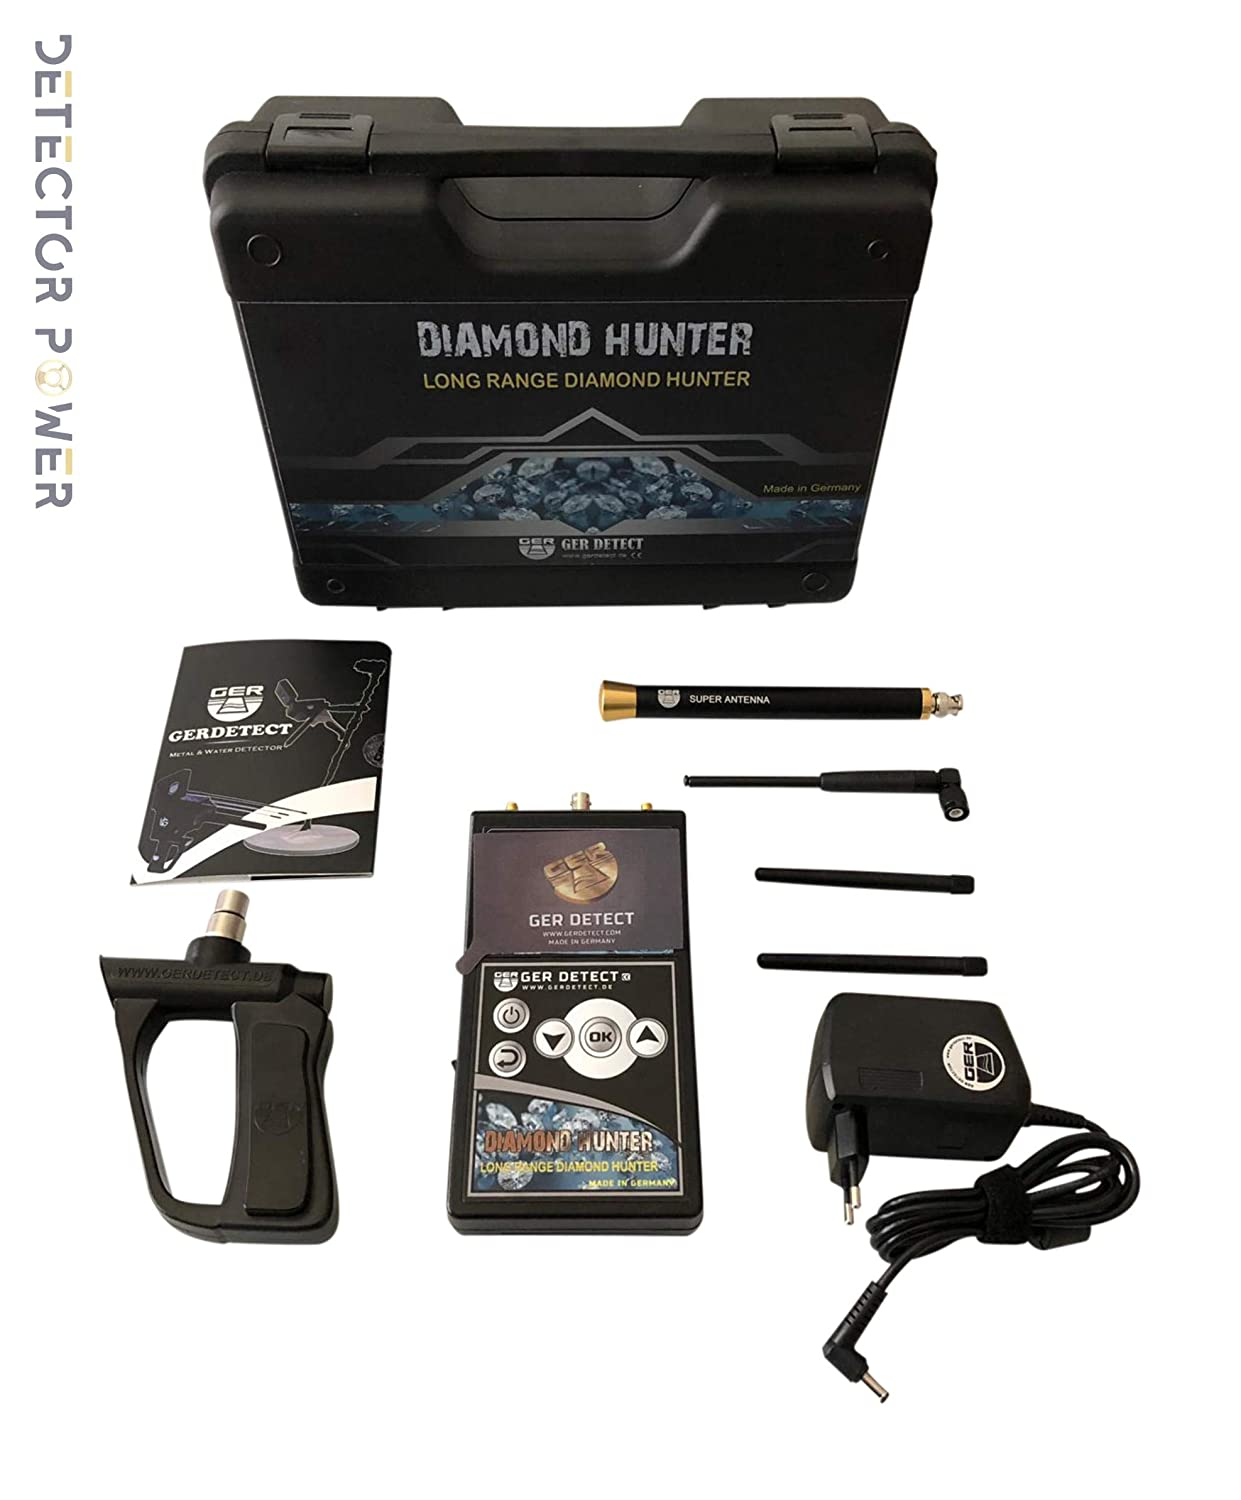 Amazon.com : GER DETECT Diamond Hunter Long Range Detector : Garden & Outdoor